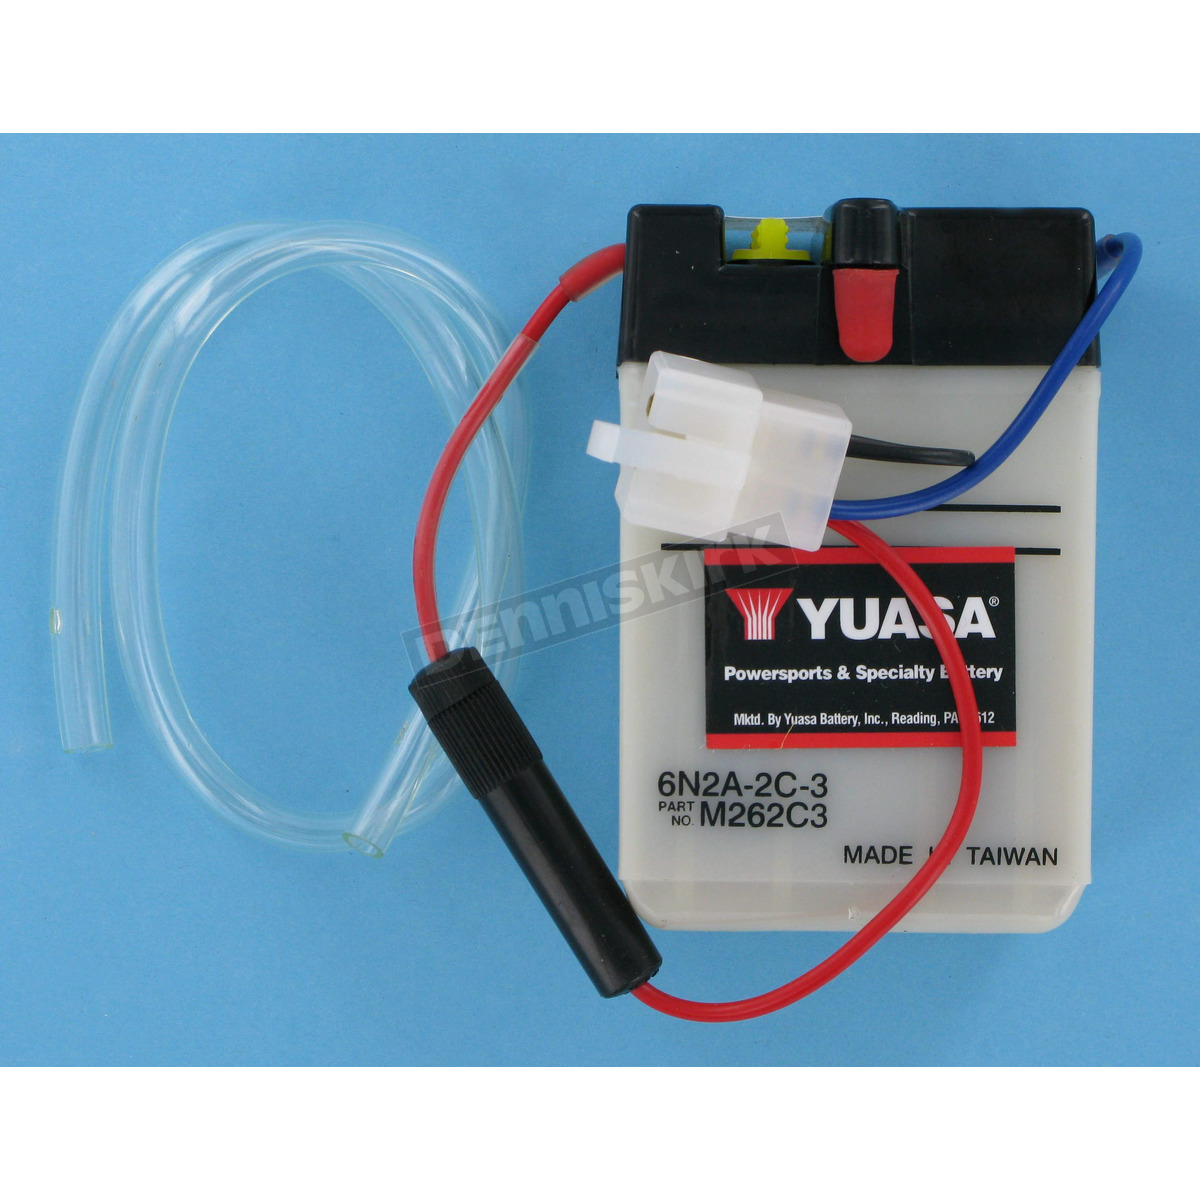 Yuasa Conventional 6 Volt Battery 6n2a 2c 3 Dirt Bike Motorcycle Car Batteries In Series Also Wiring